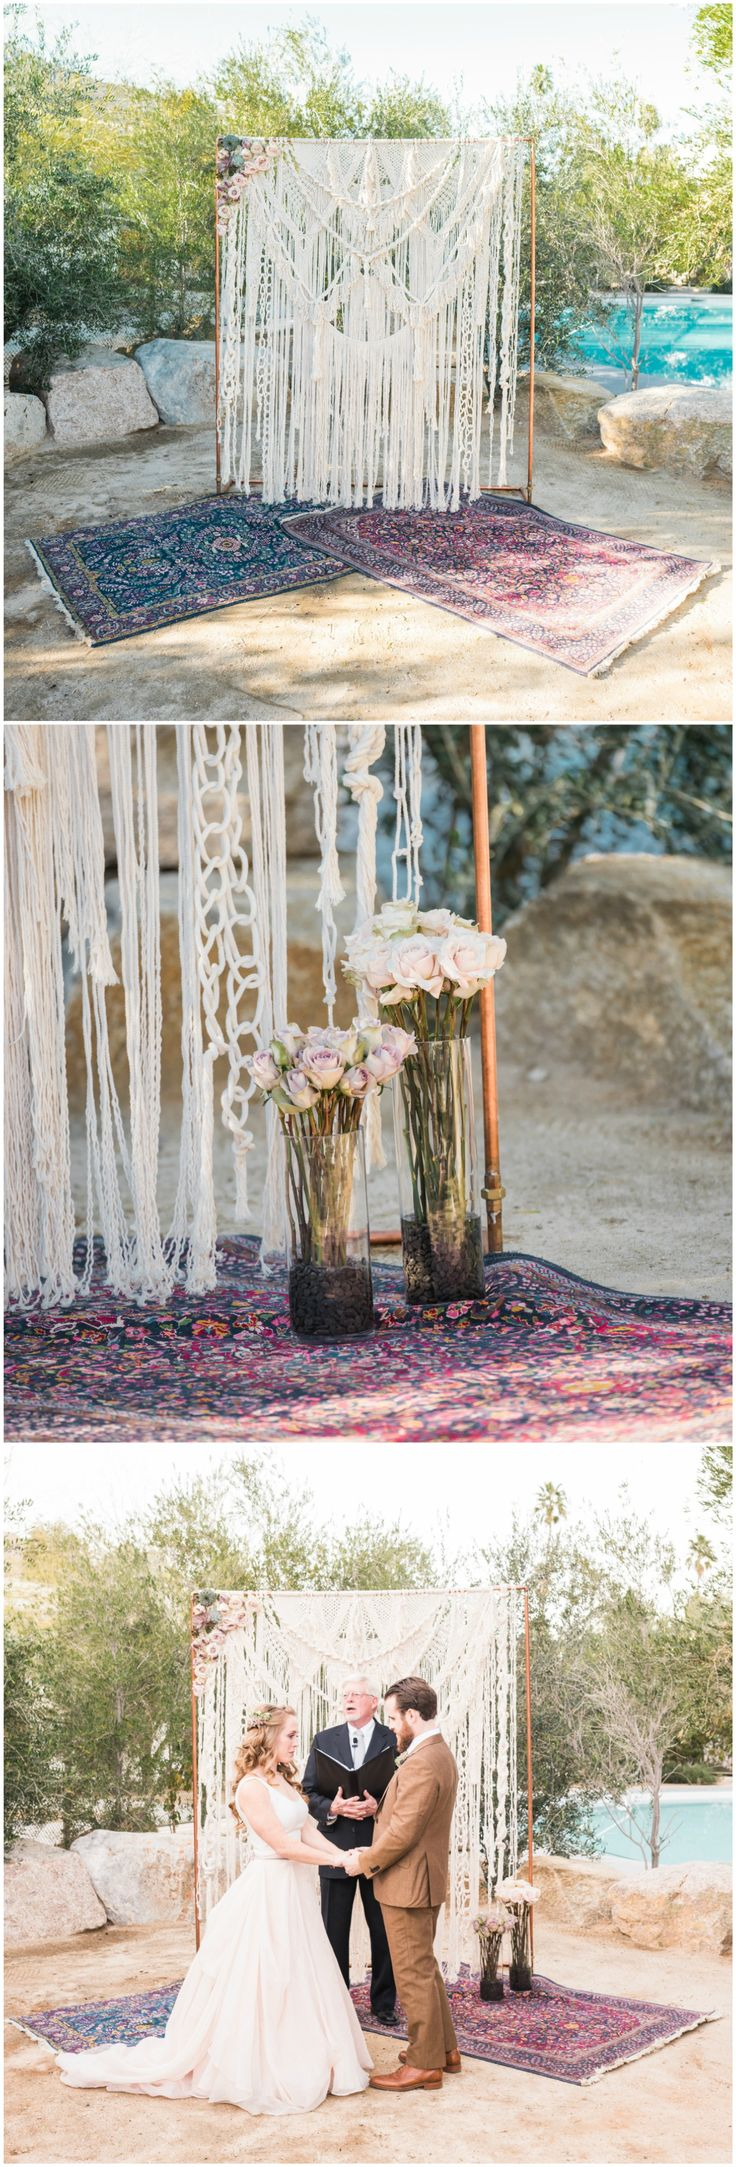 Outdoor boho wedding ceremony, colorful rugs, roses, crochet arbor, California wedding // Randy + Ashley